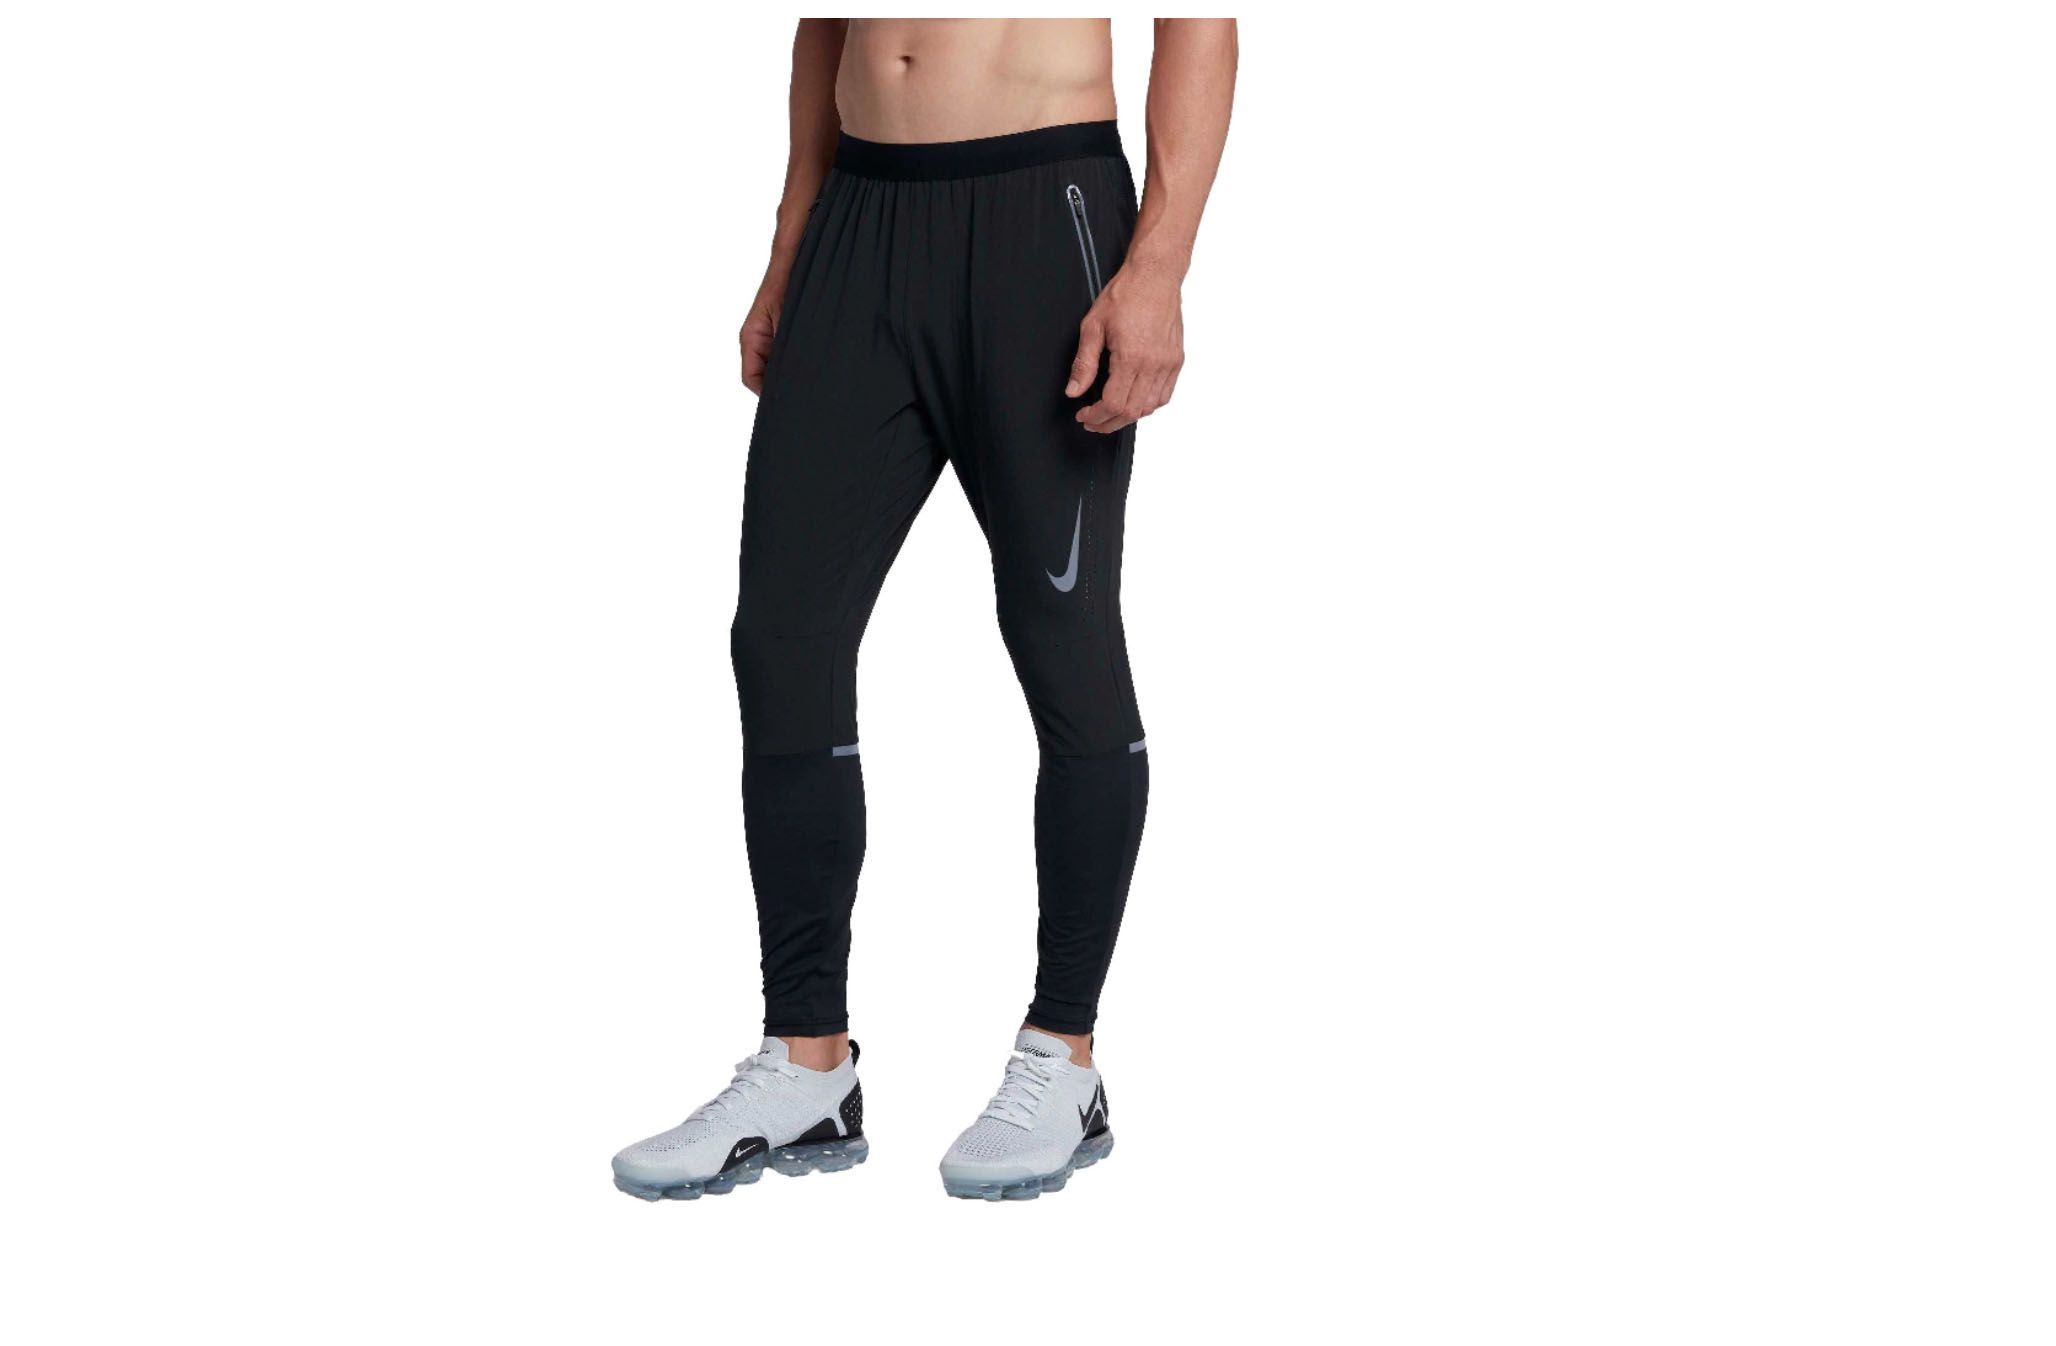 df91e9a4a2e1 Best Running Leggings - Workout Tights 2019